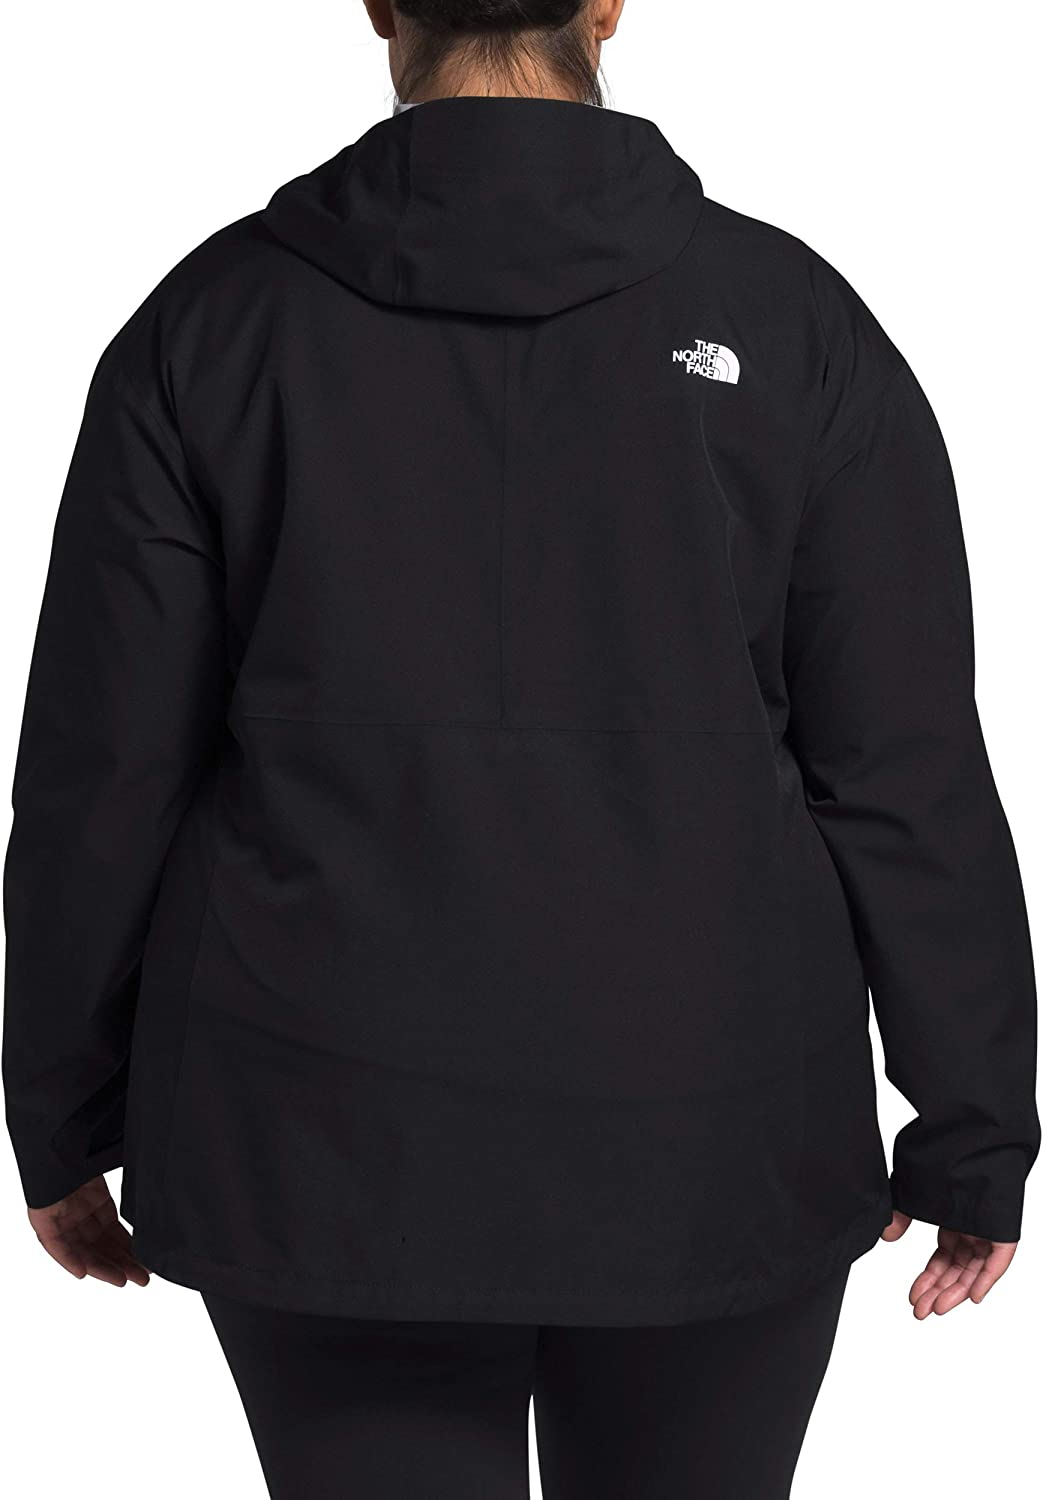 The North Face Womens Plus Allproof Stretch Jacket